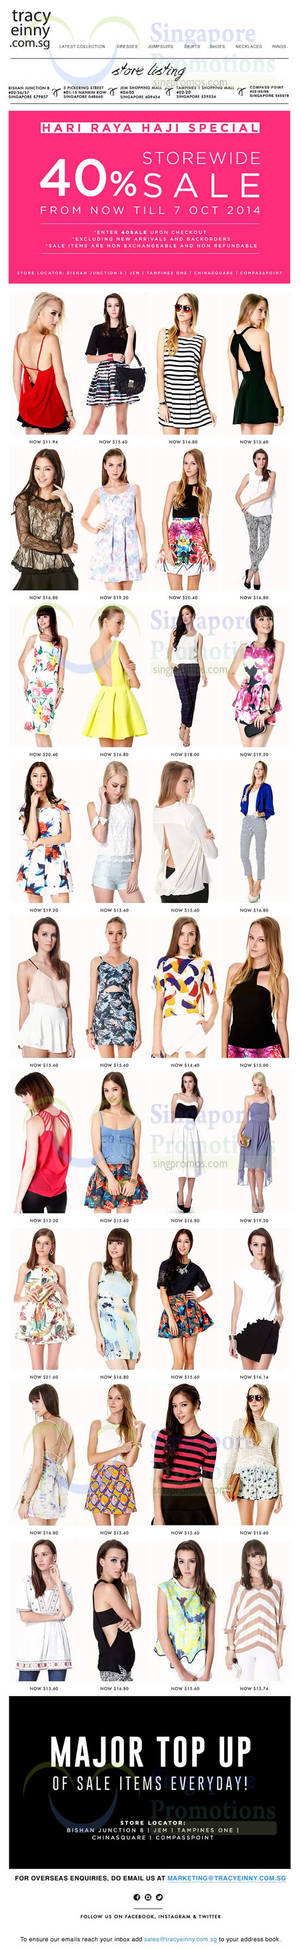 Featured image for Tracyeinny 40% OFF Storewide SALE 30 Sep – 7 Oct 2014